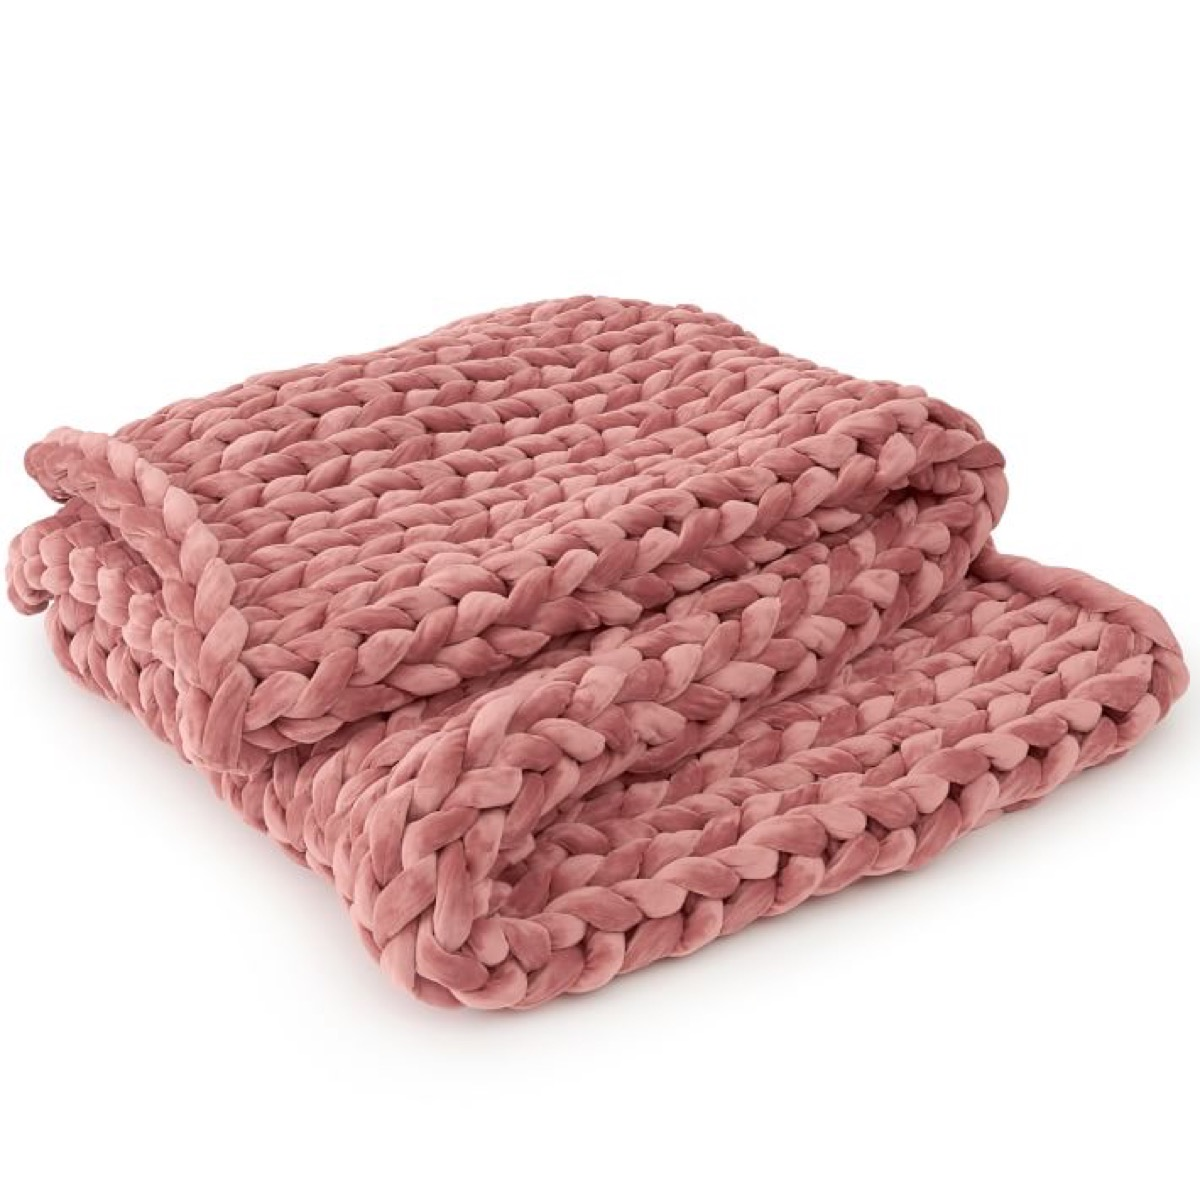 pink knit weighted blanket